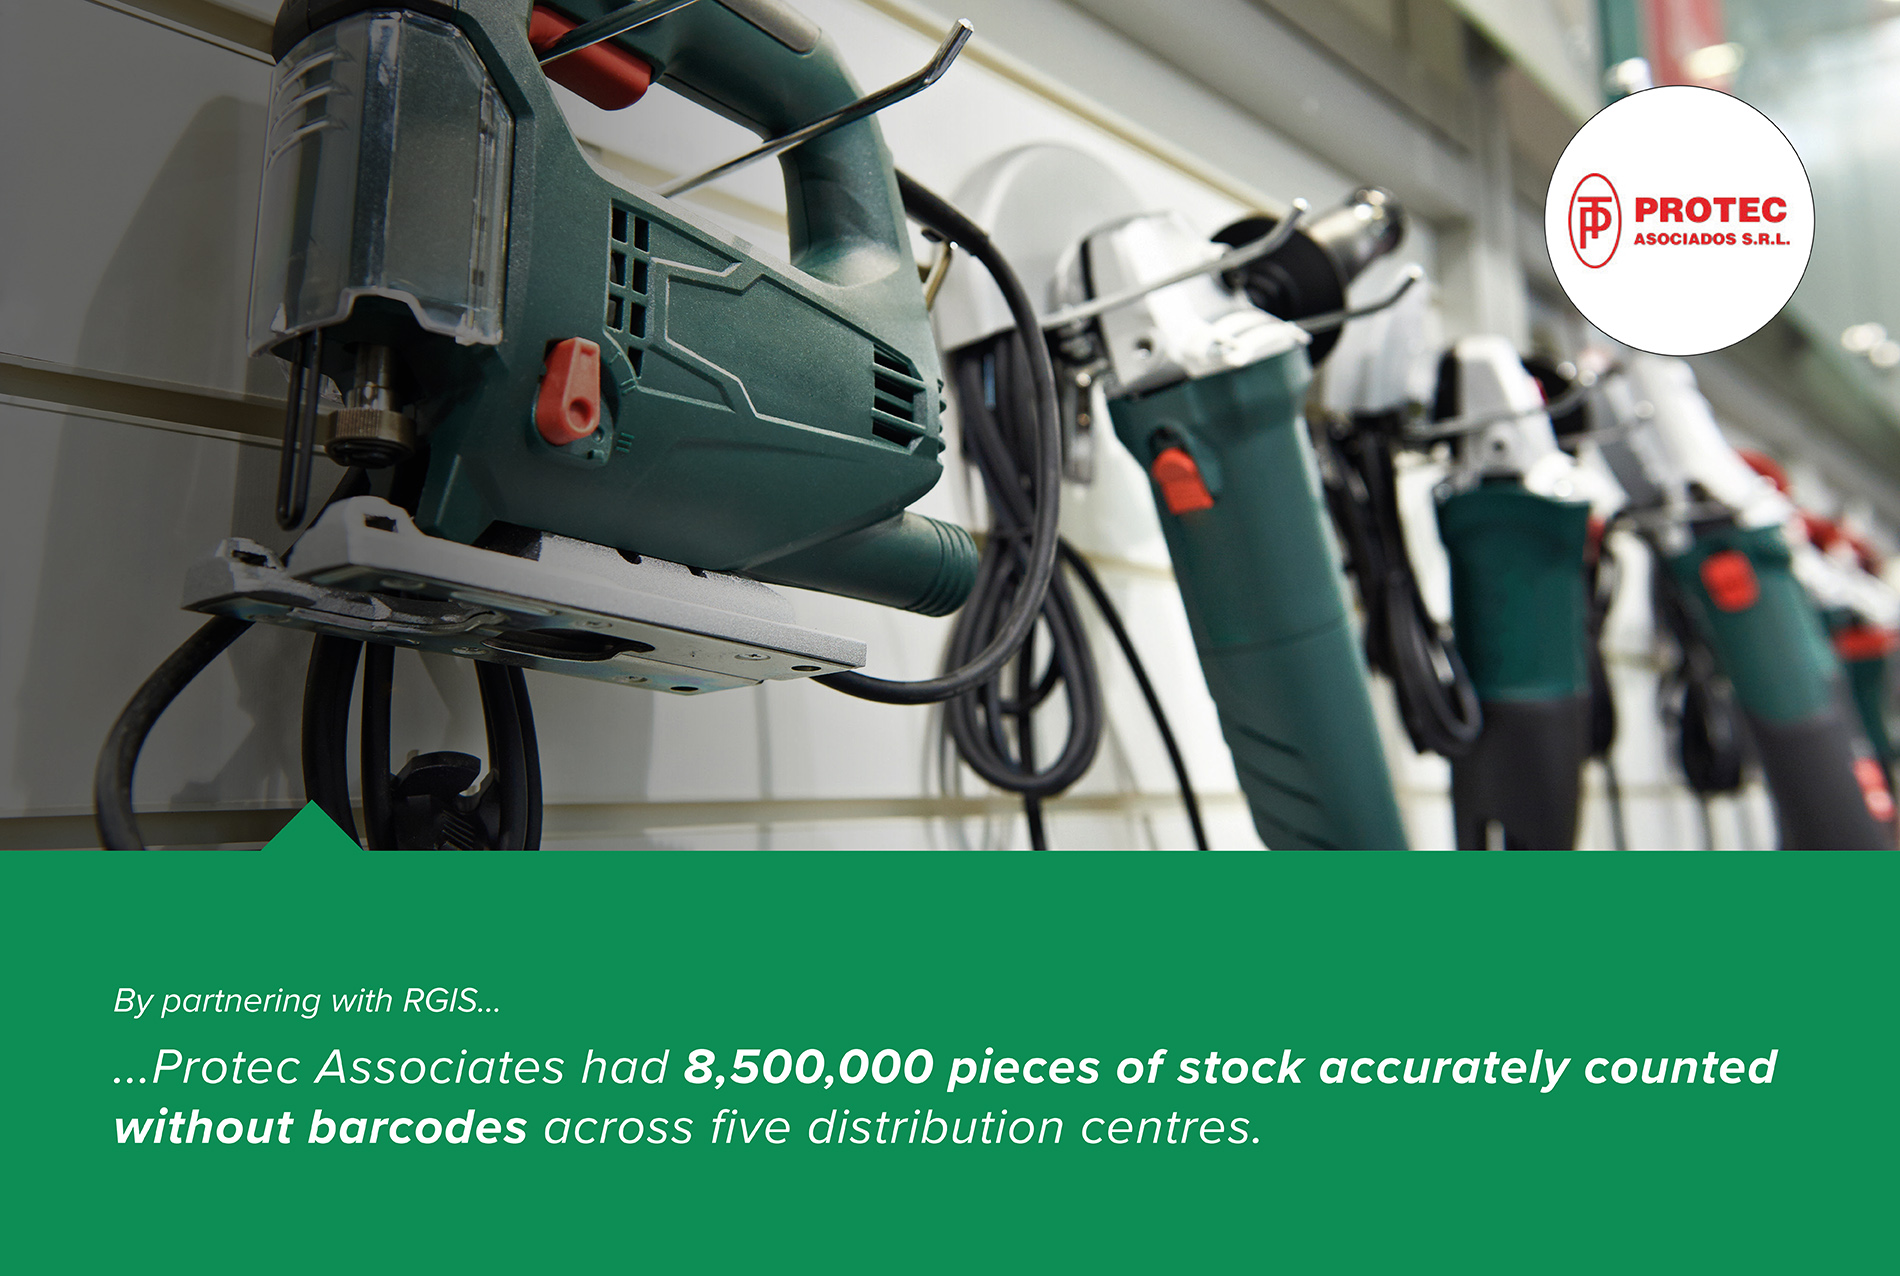 Tool Distribution Centres Full Counts with No Barcodes